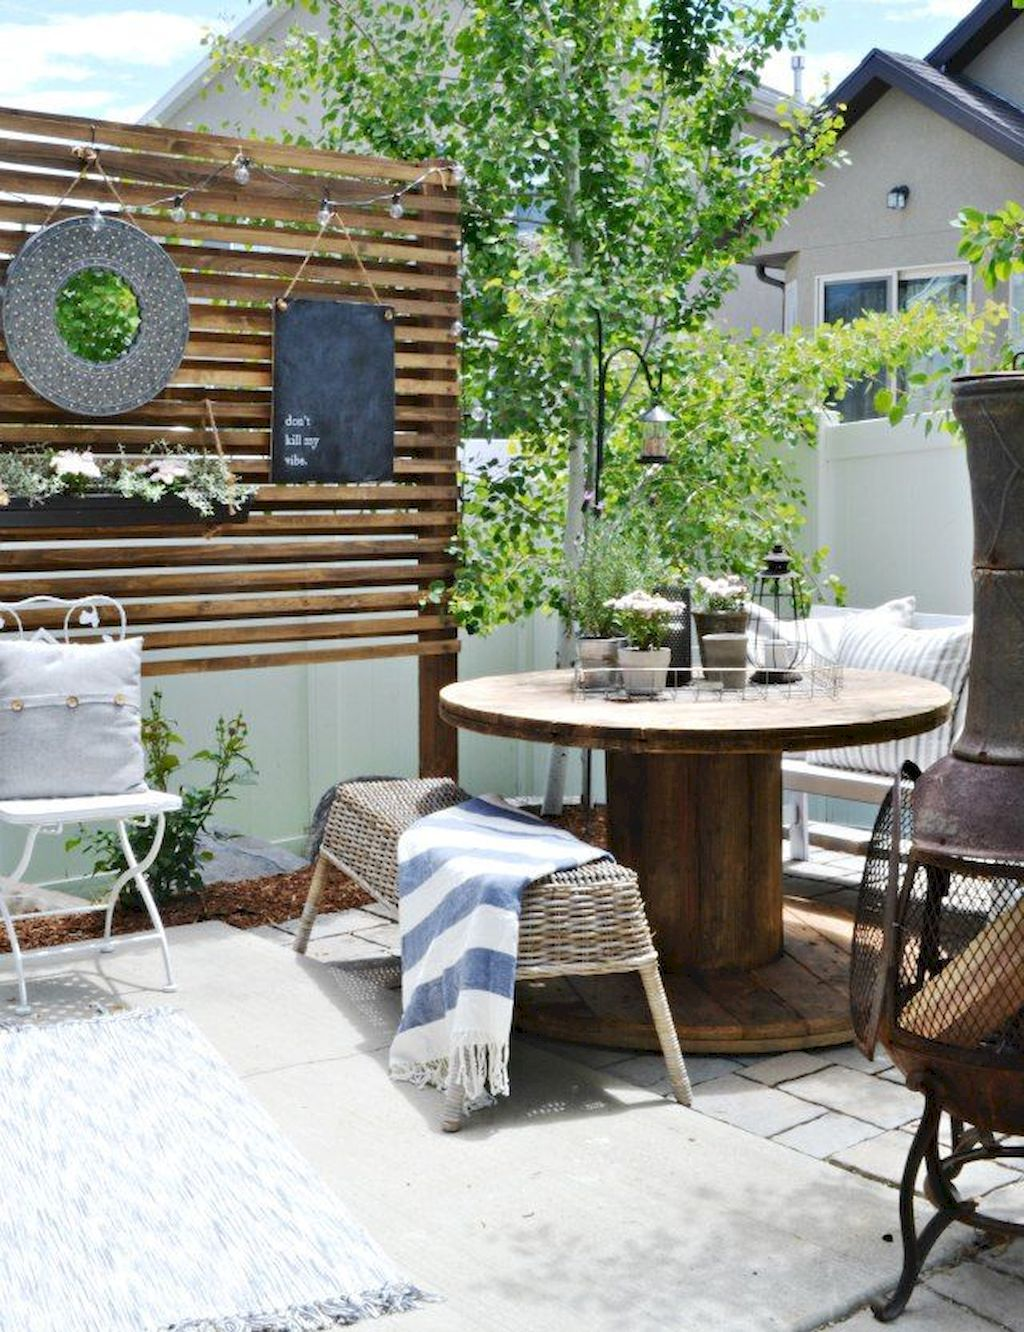 80 Awesome Small Patio On Budget Design Ideas Small Outdoor